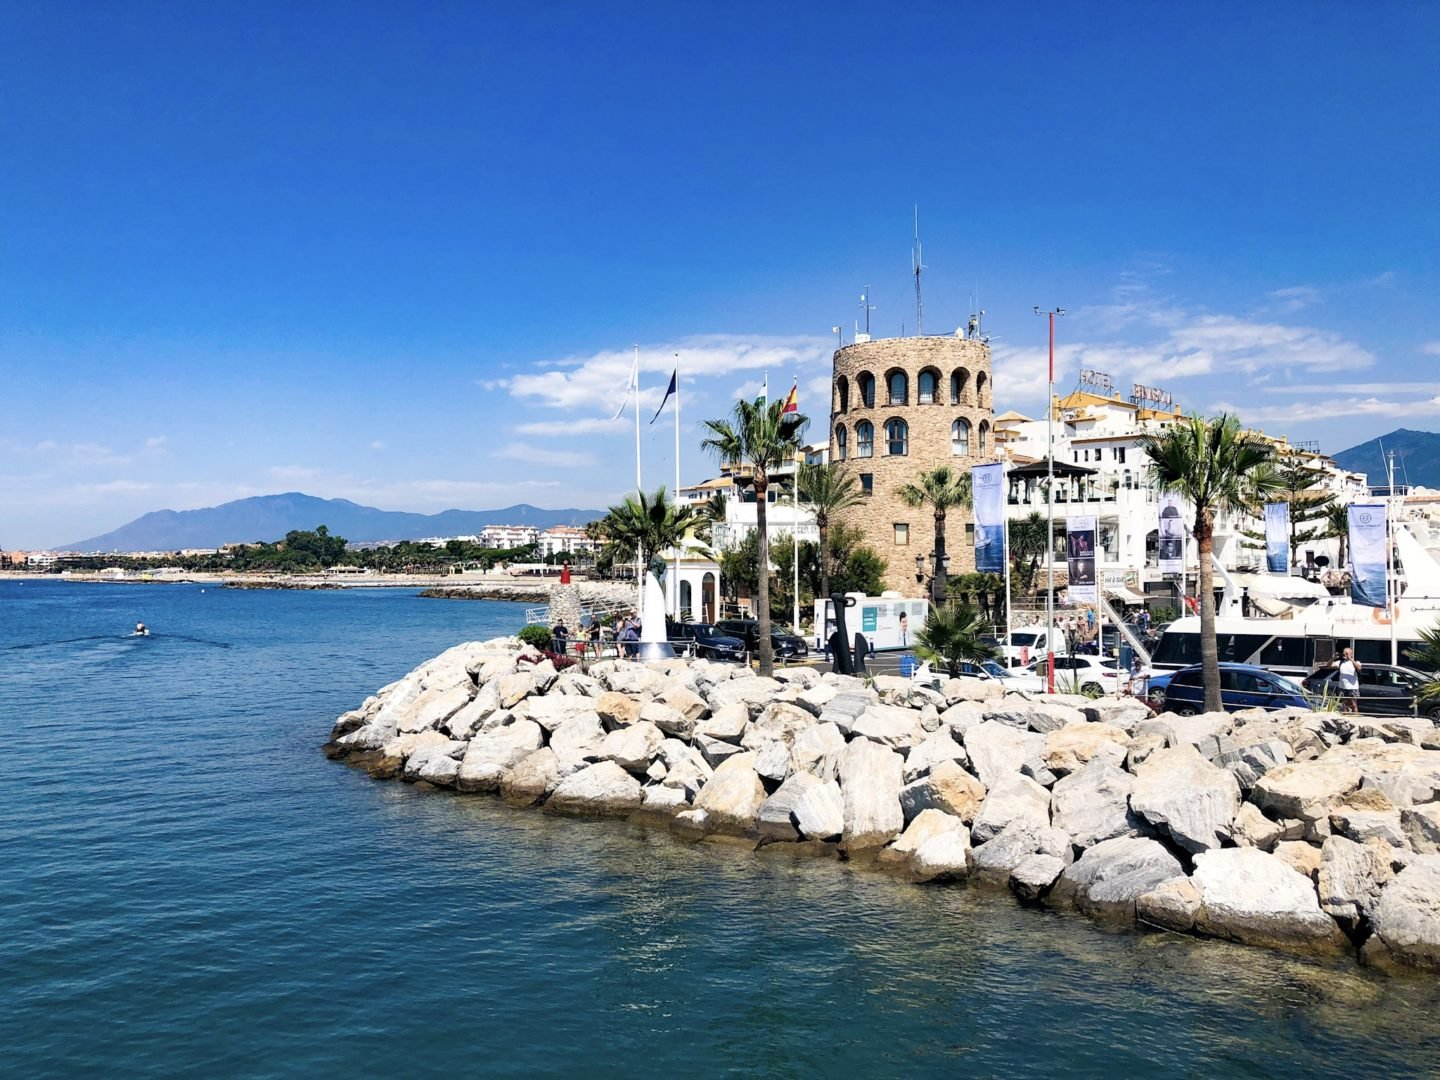 Puerto Banus overlooking Pangea nightclub restaurants and view of the beach